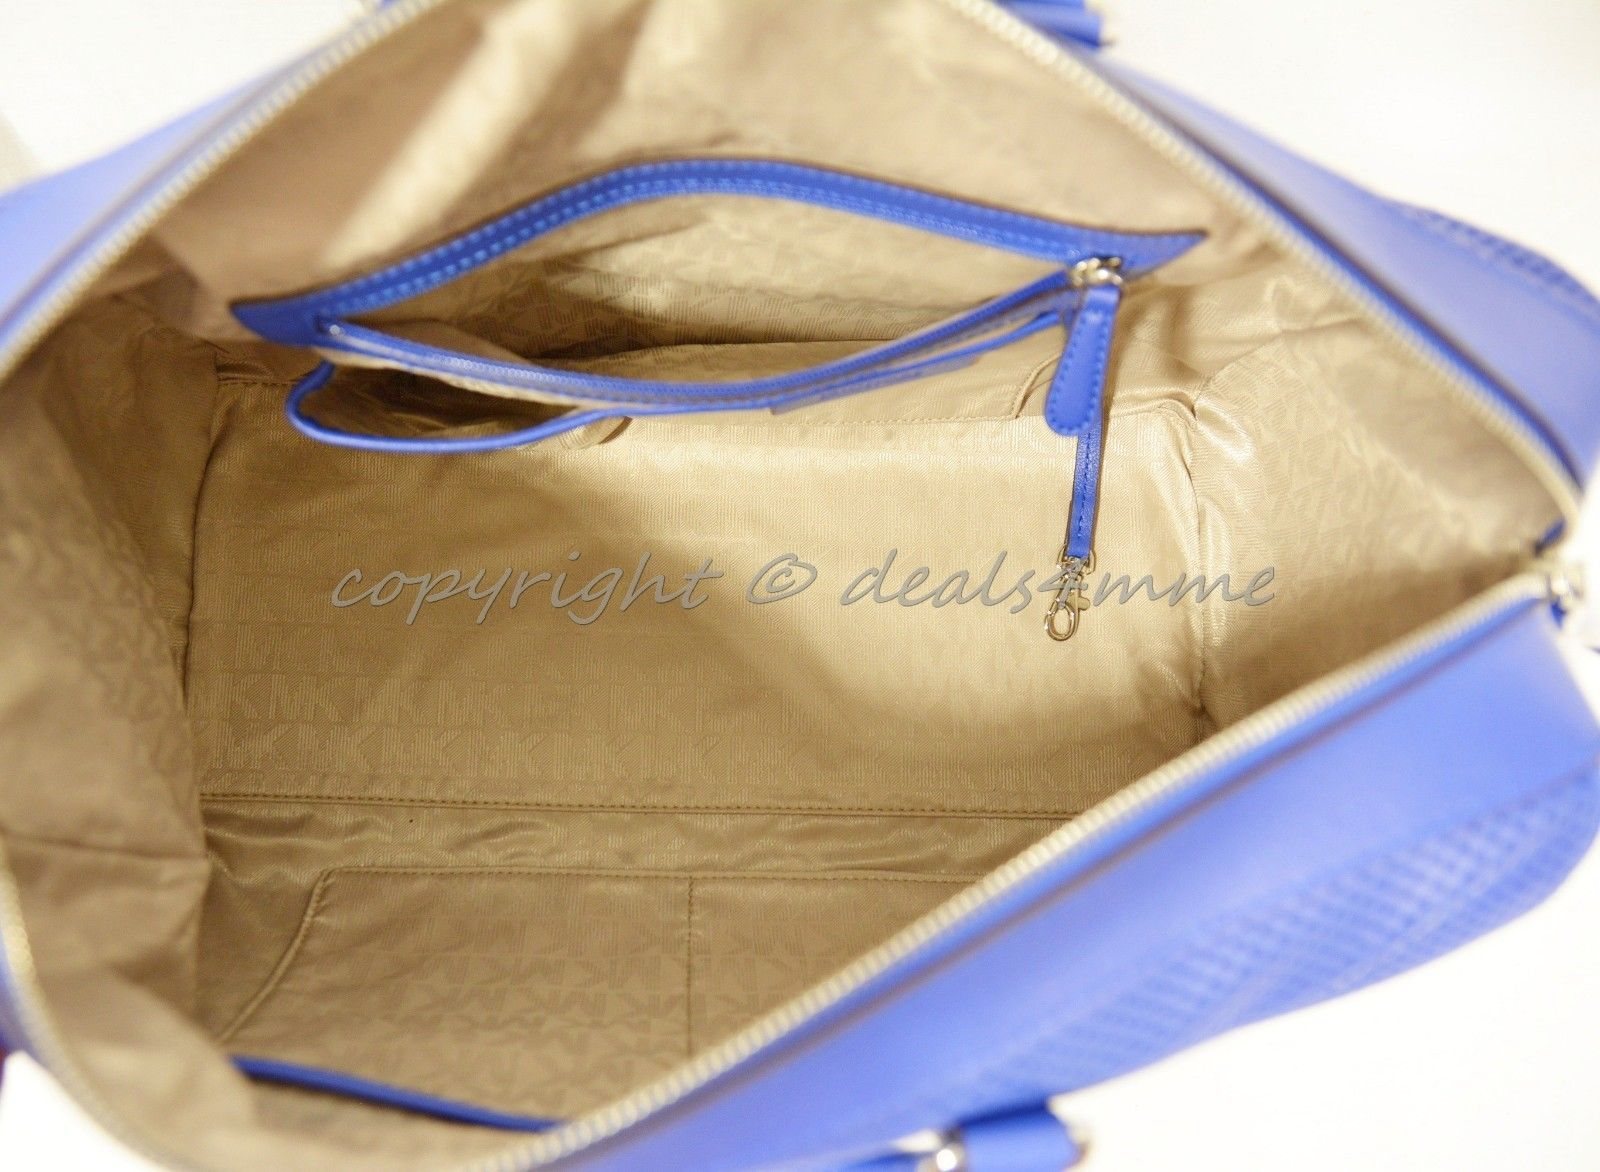 0e44229a02c3dc Michael Kors Libby Large Gym Bag in Electric Blue Perforated Leather